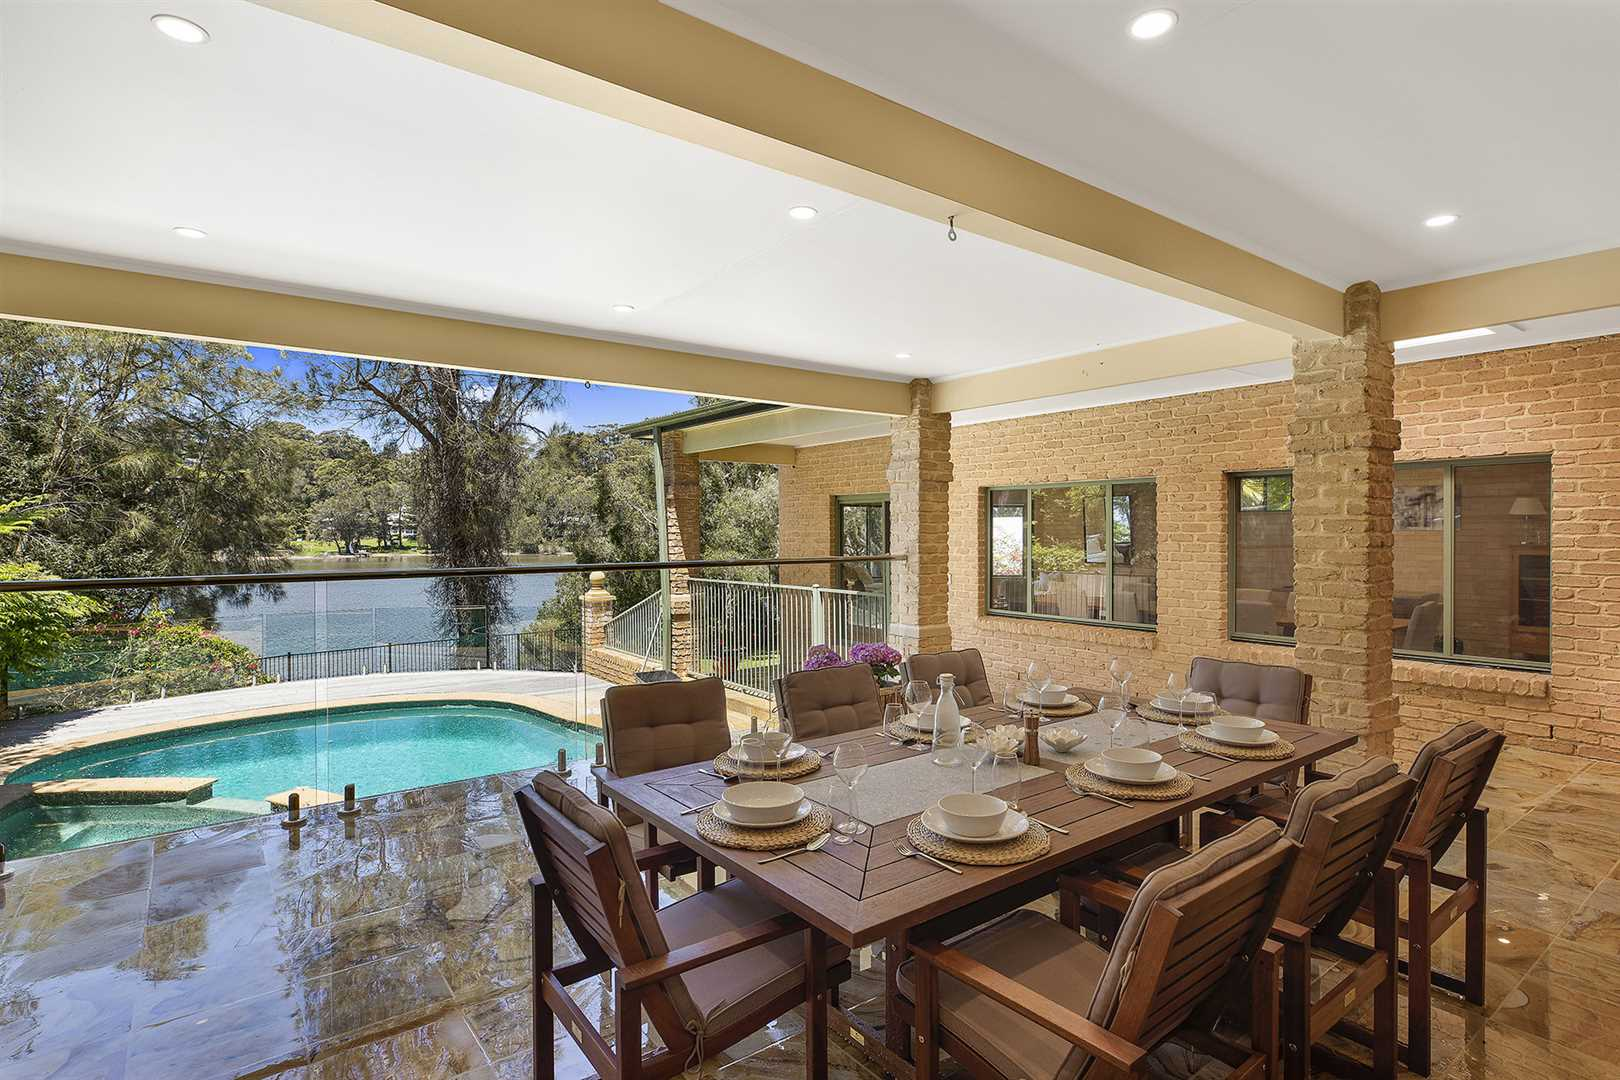 Covered Outdoor Dining & Entertaining, Pool, Spa & Lake View